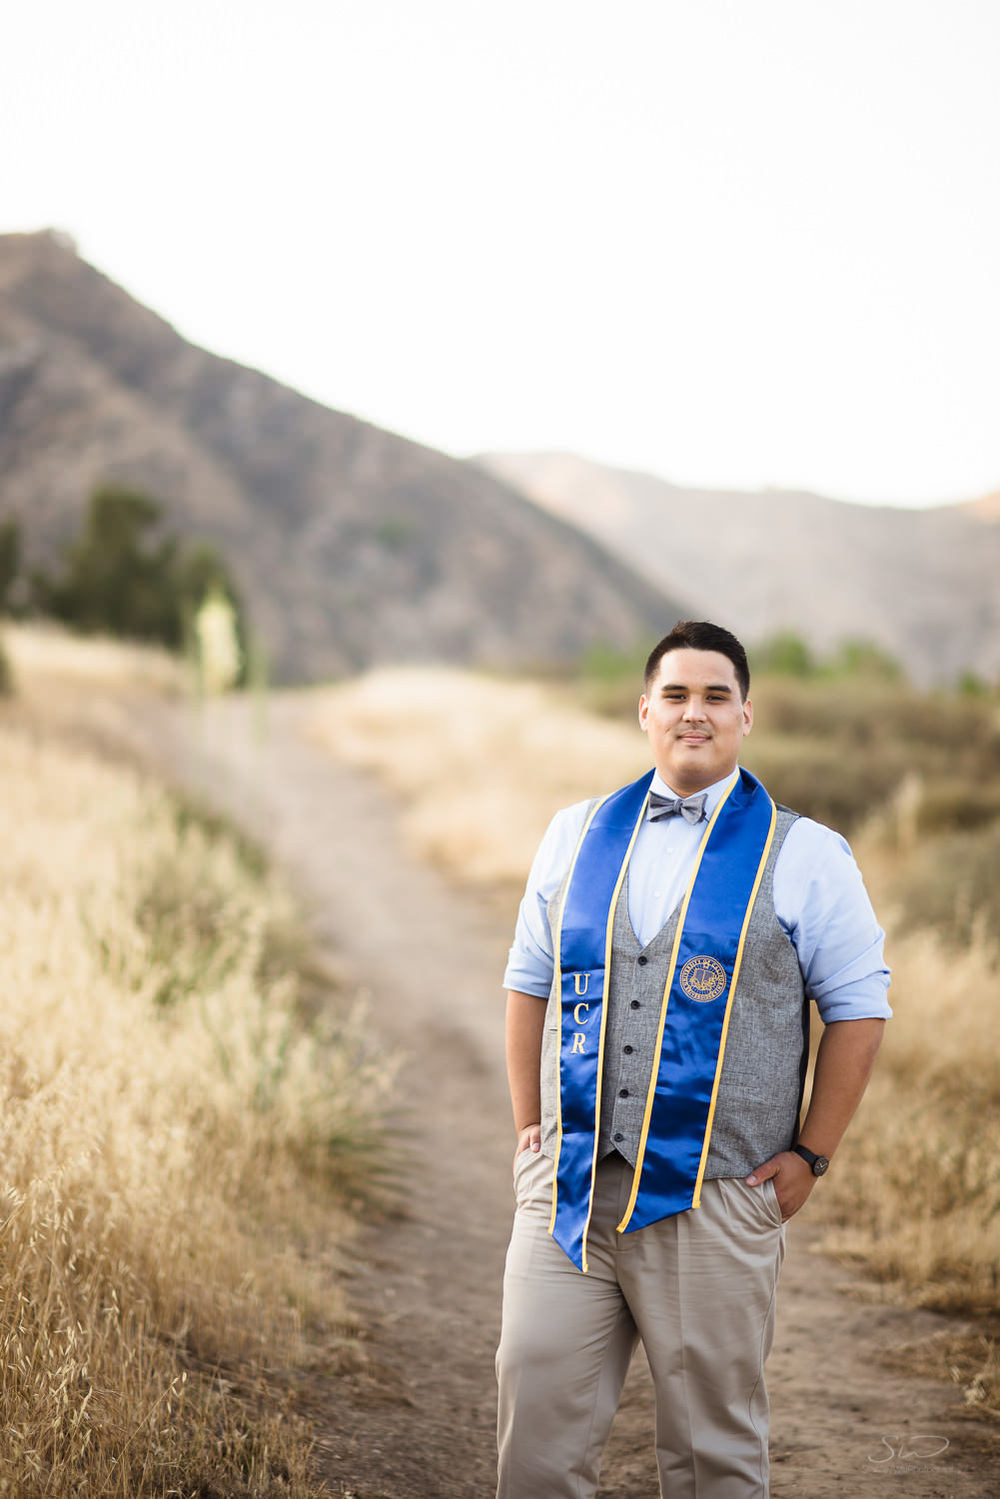 ucr_ucla_graduation_couple_granada_hills-18.jpg